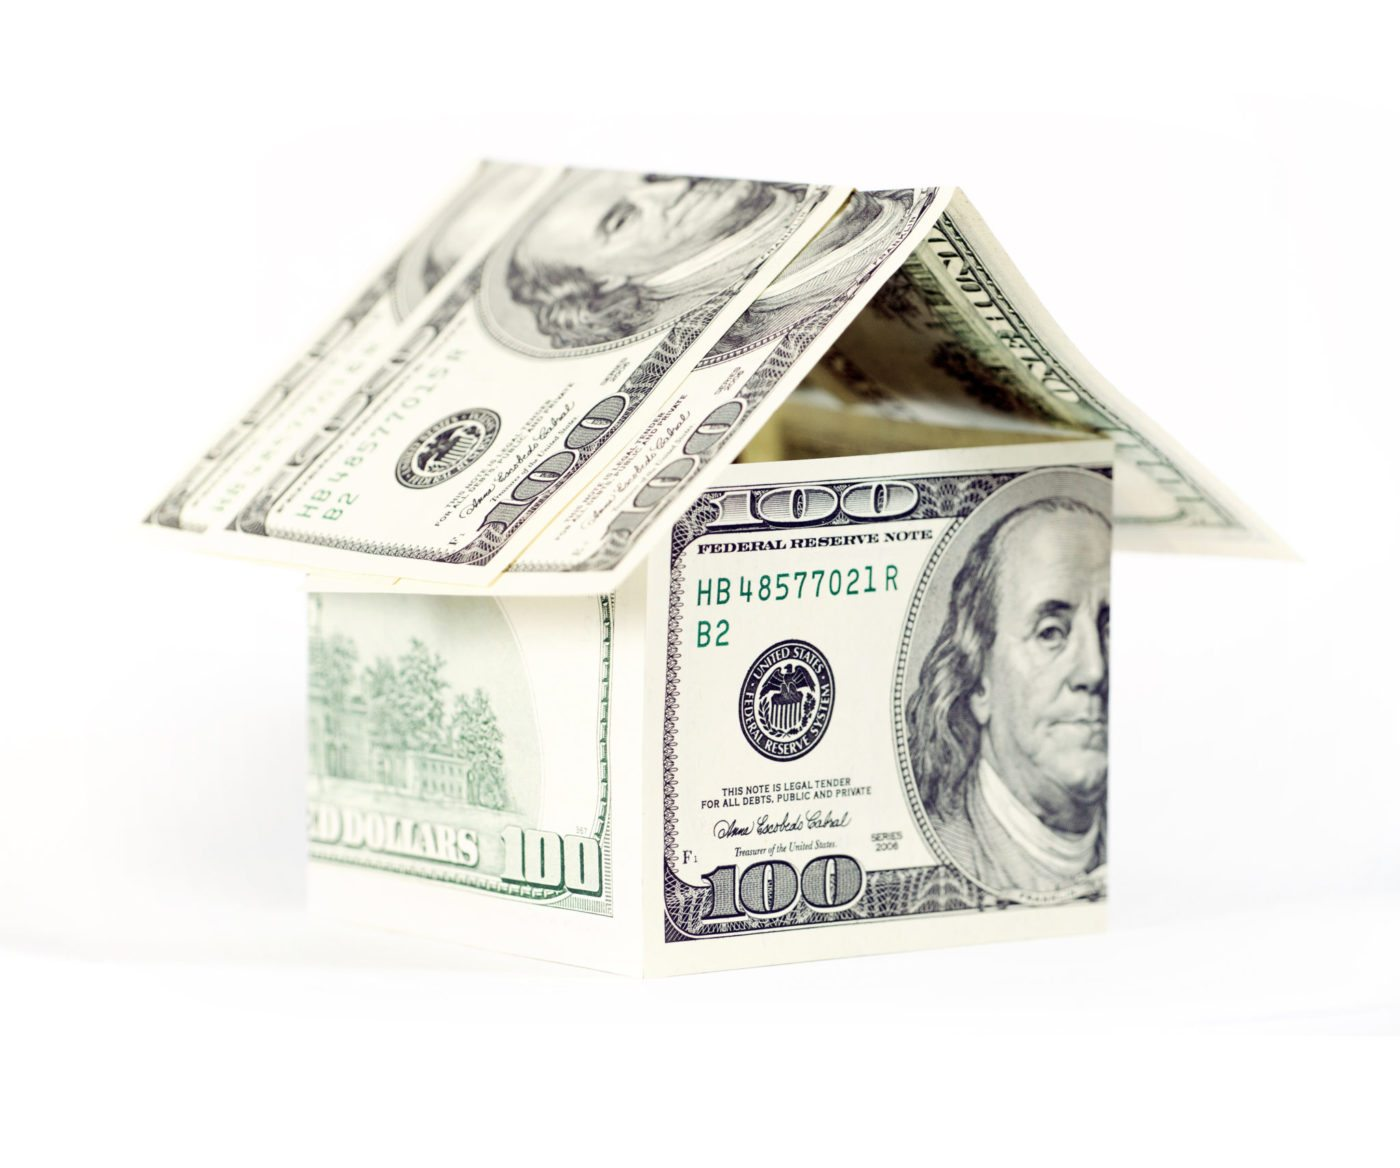 New rules for jumbo loans, qualified residential mortgages could make homebuying more costly in 2014